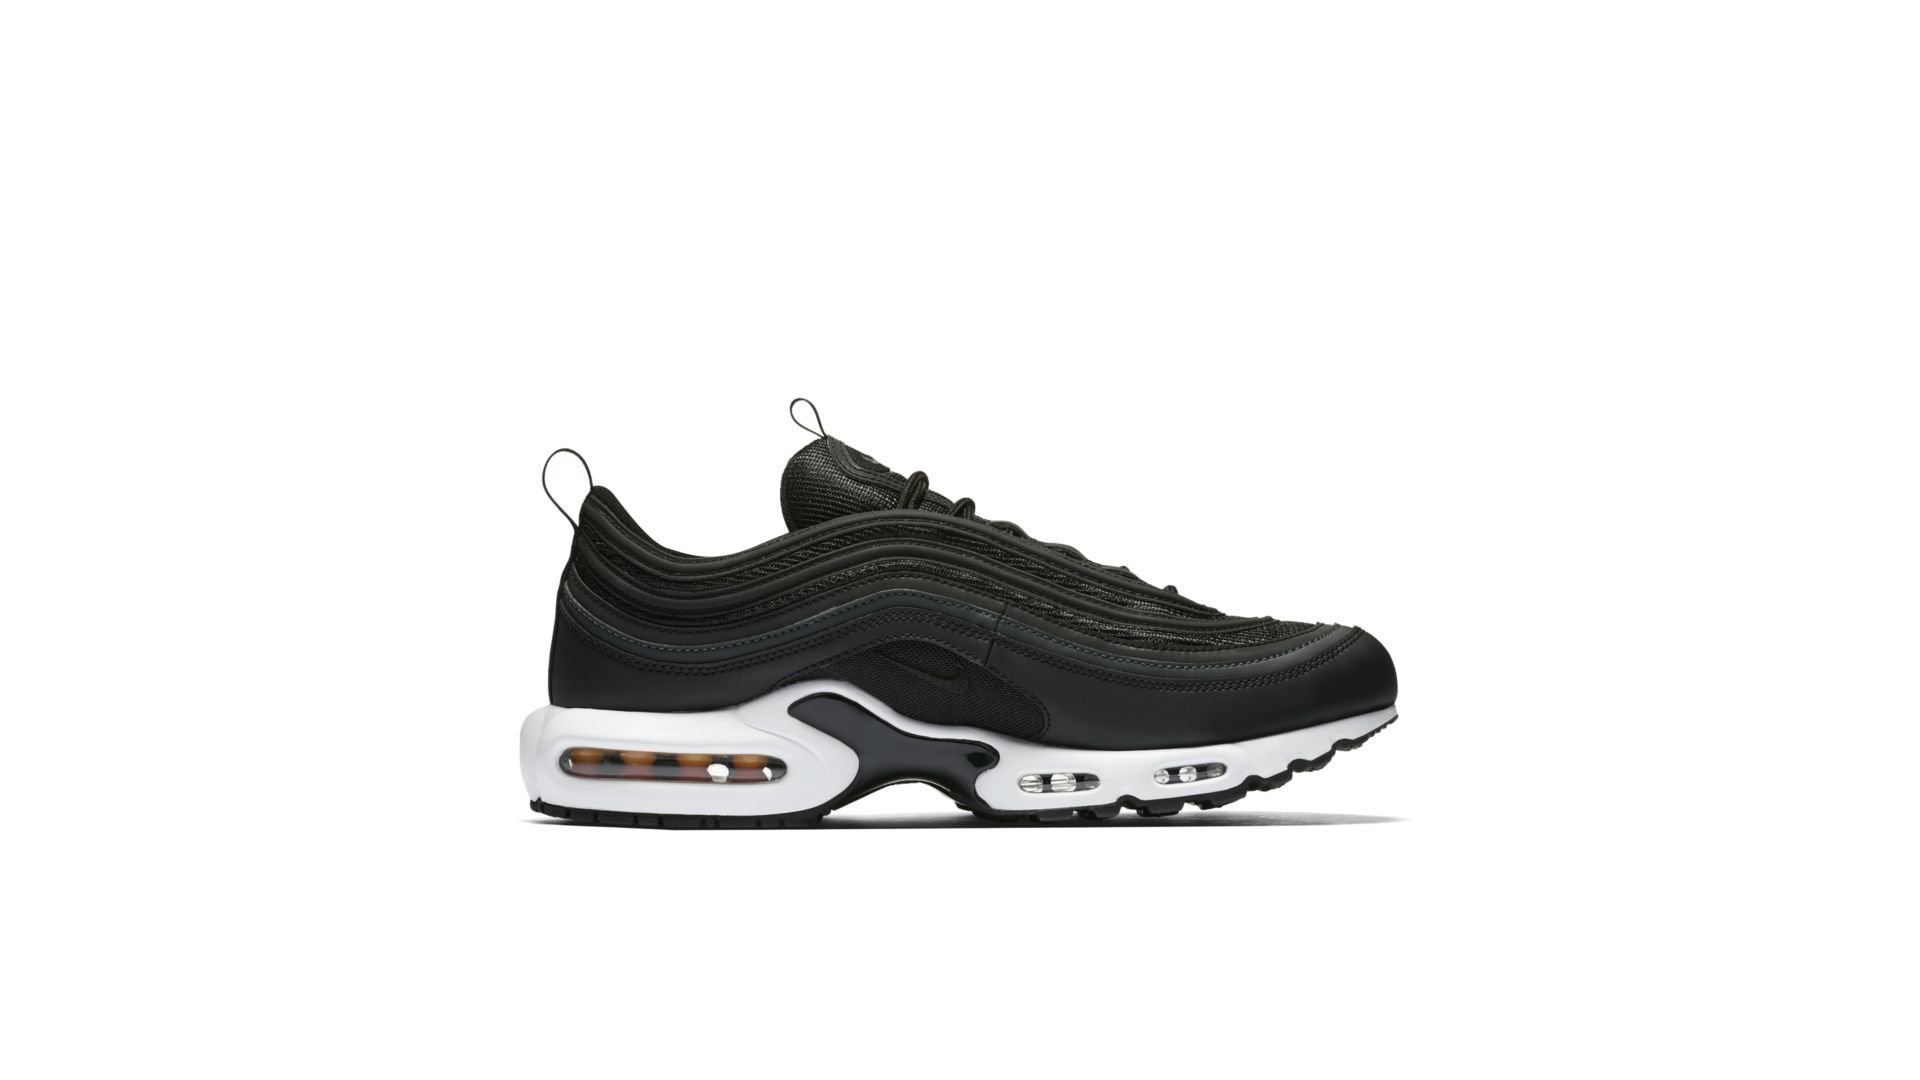 Nike Air Max Plus 97 AH8143-001